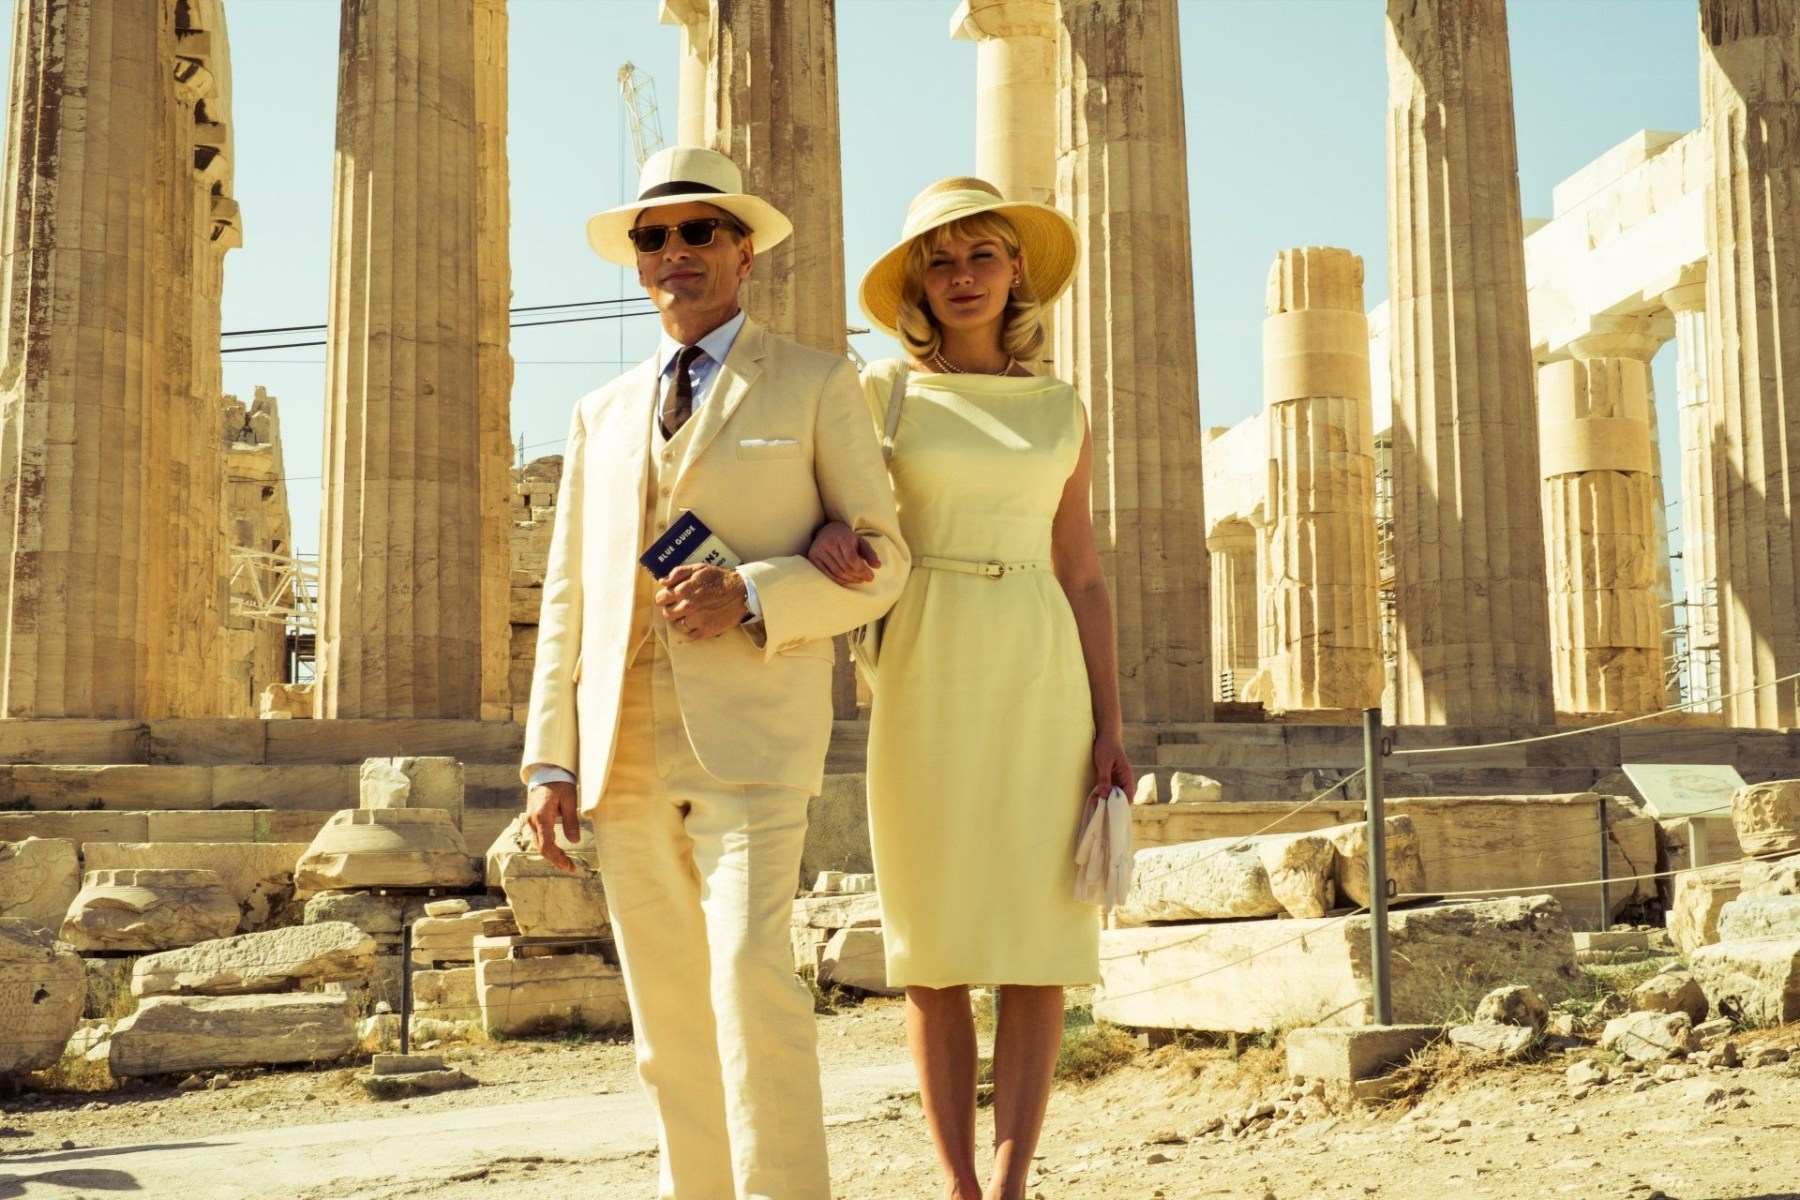 On Location : The Two Faces of January (2014) Behind the Scenes